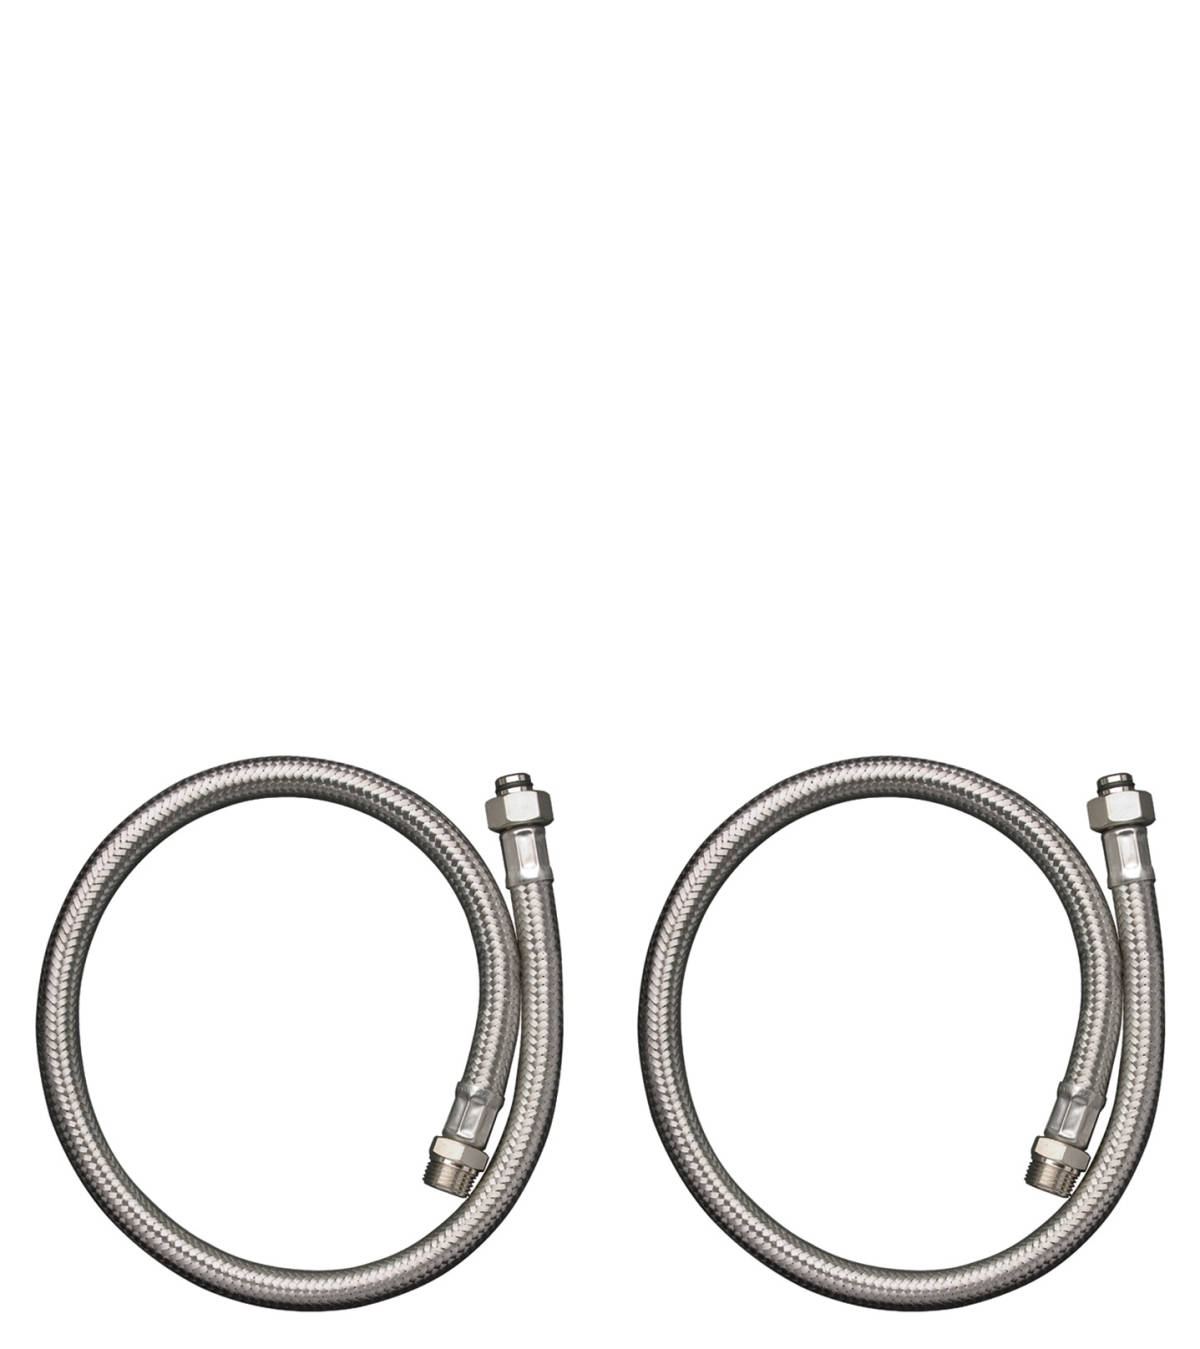 Connection tube set for 2-hole rim mounted thermostatic bath mixer, n.a., 13089000